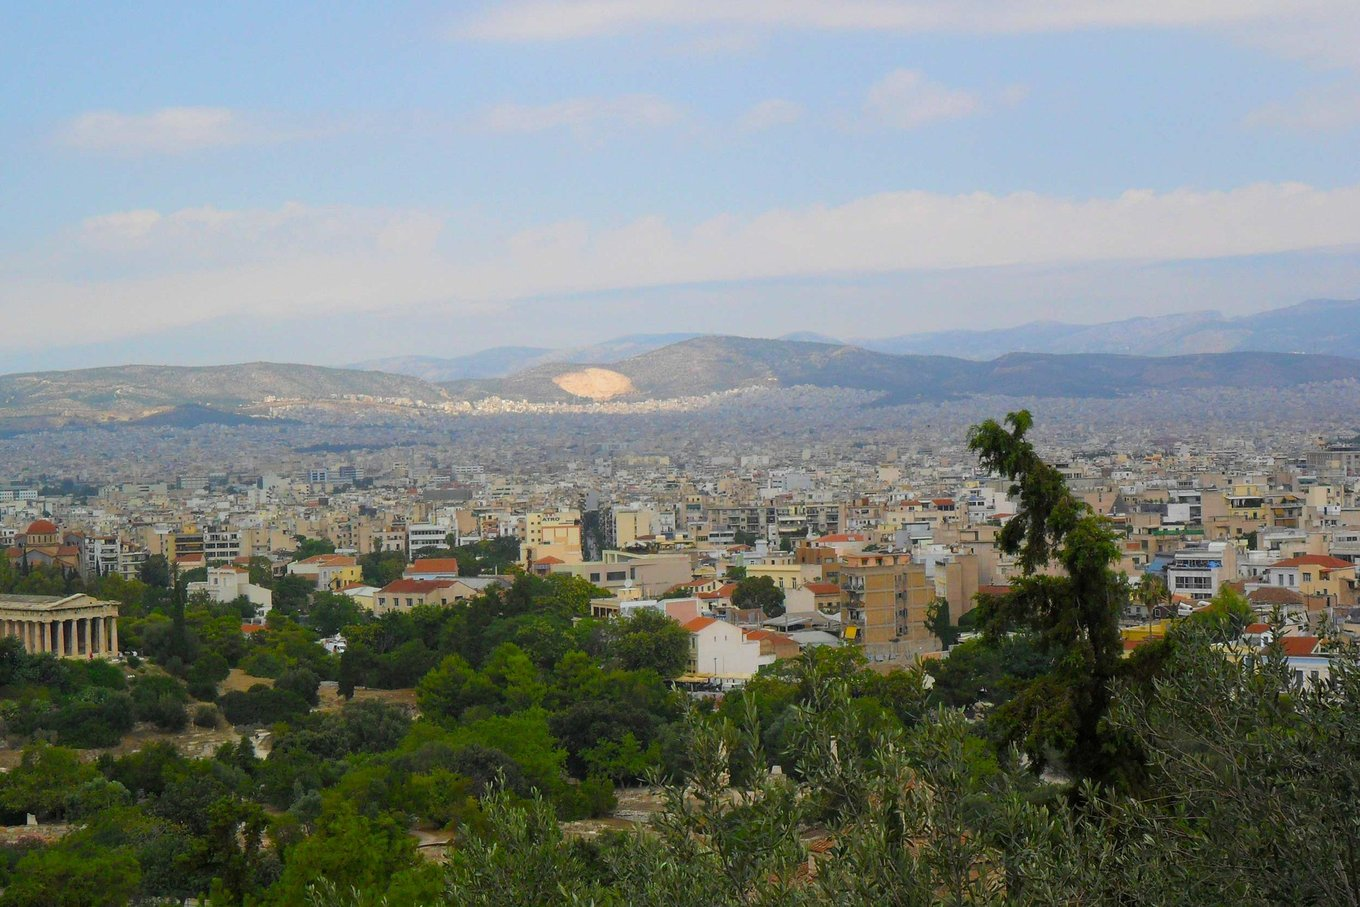 City views from the Acropolis in Athens, Greece